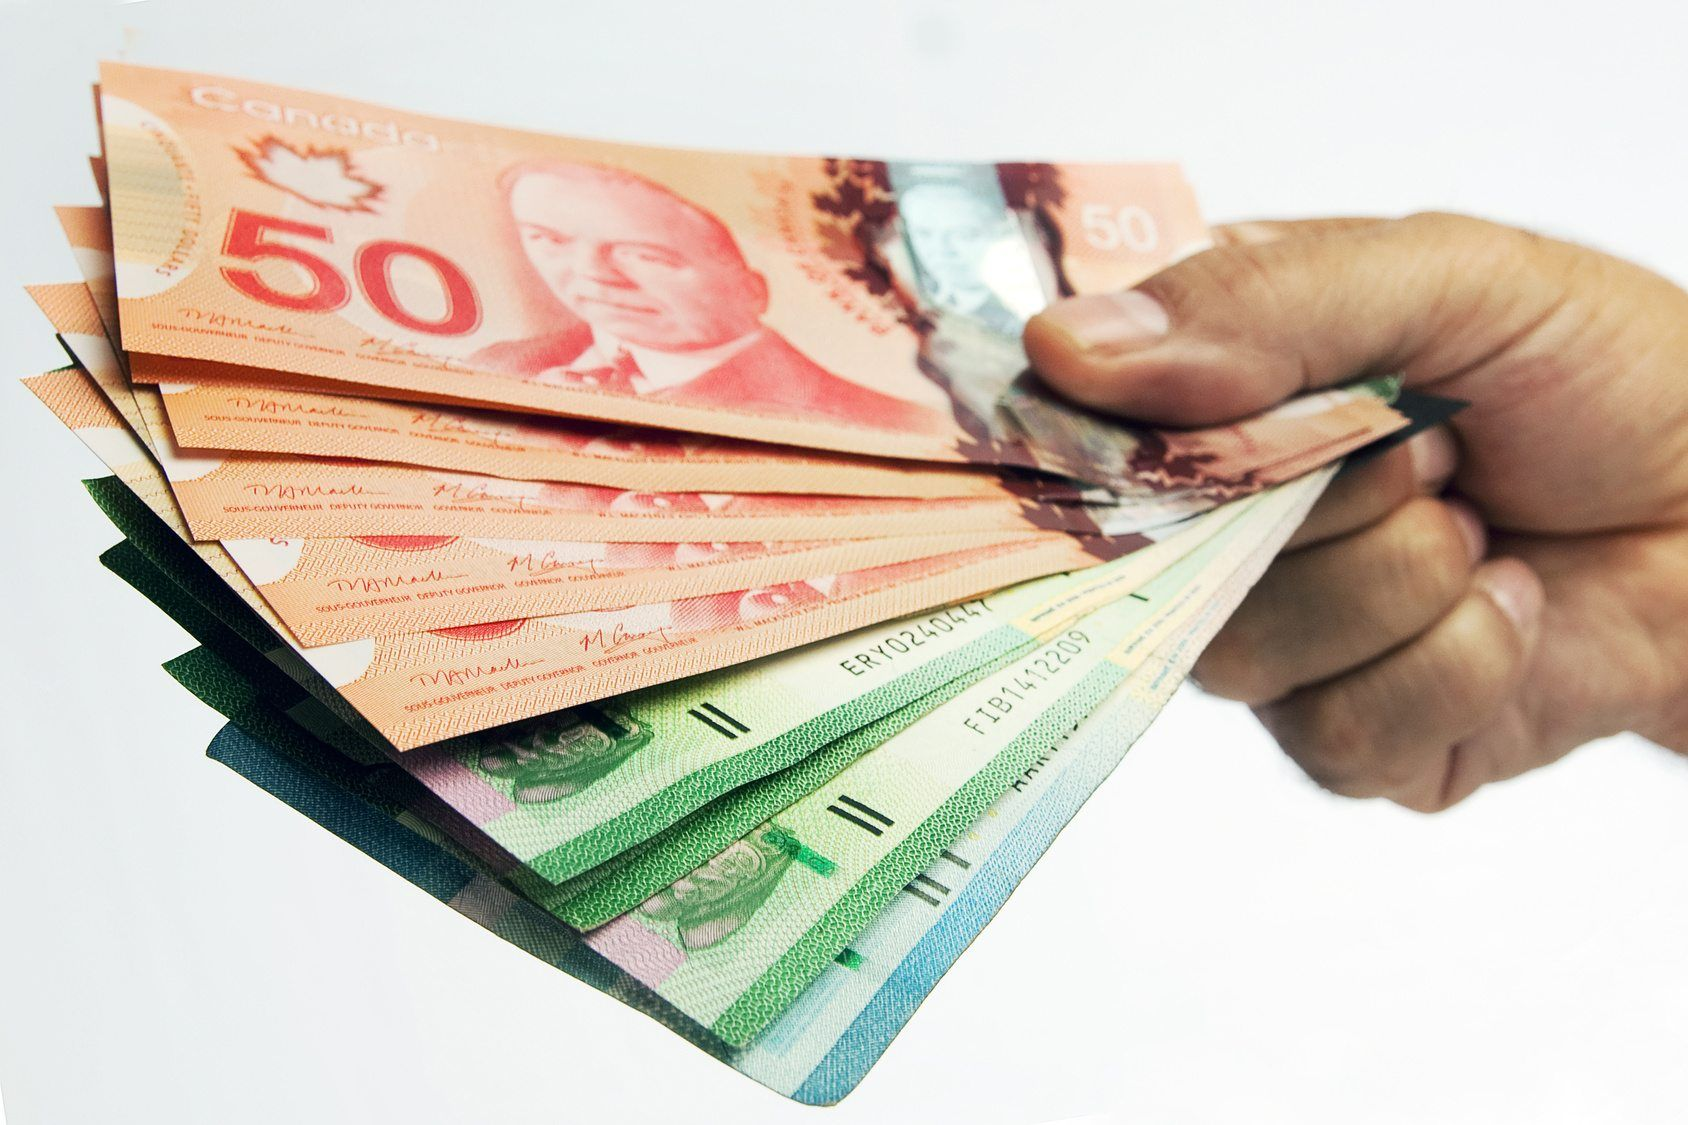 Instant Payday Loans Canada Are Effortlessly Available In The Online Market That Can Provide Y Payday Loans Online Instant Payday Loans Guaranteed Payday Loans